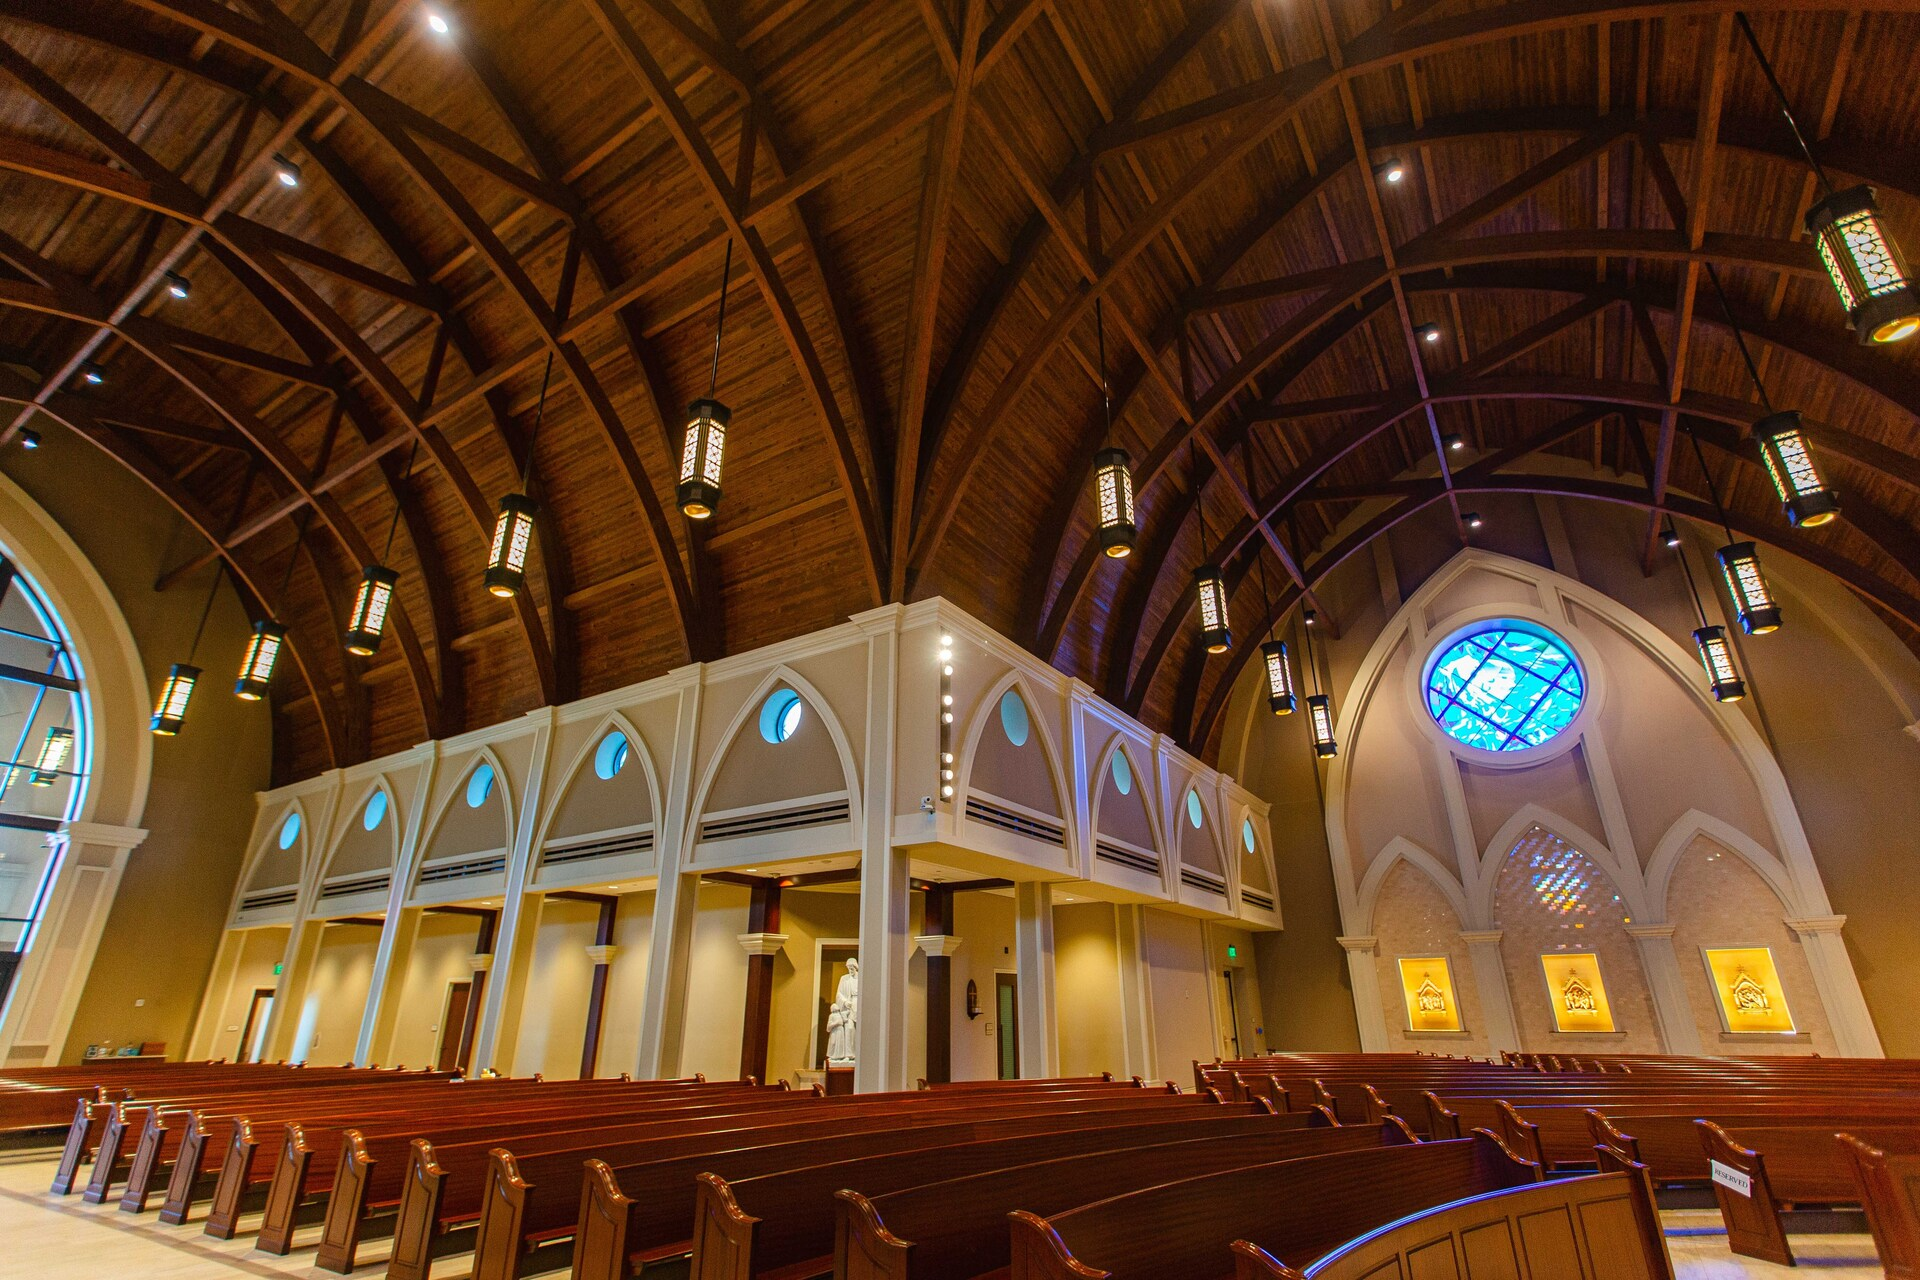 Gator Millworks St George Catholic Church Baton Rouge Louisiana Sanctuary Interior Lighting and Ceiling Millwork Detail and Finish